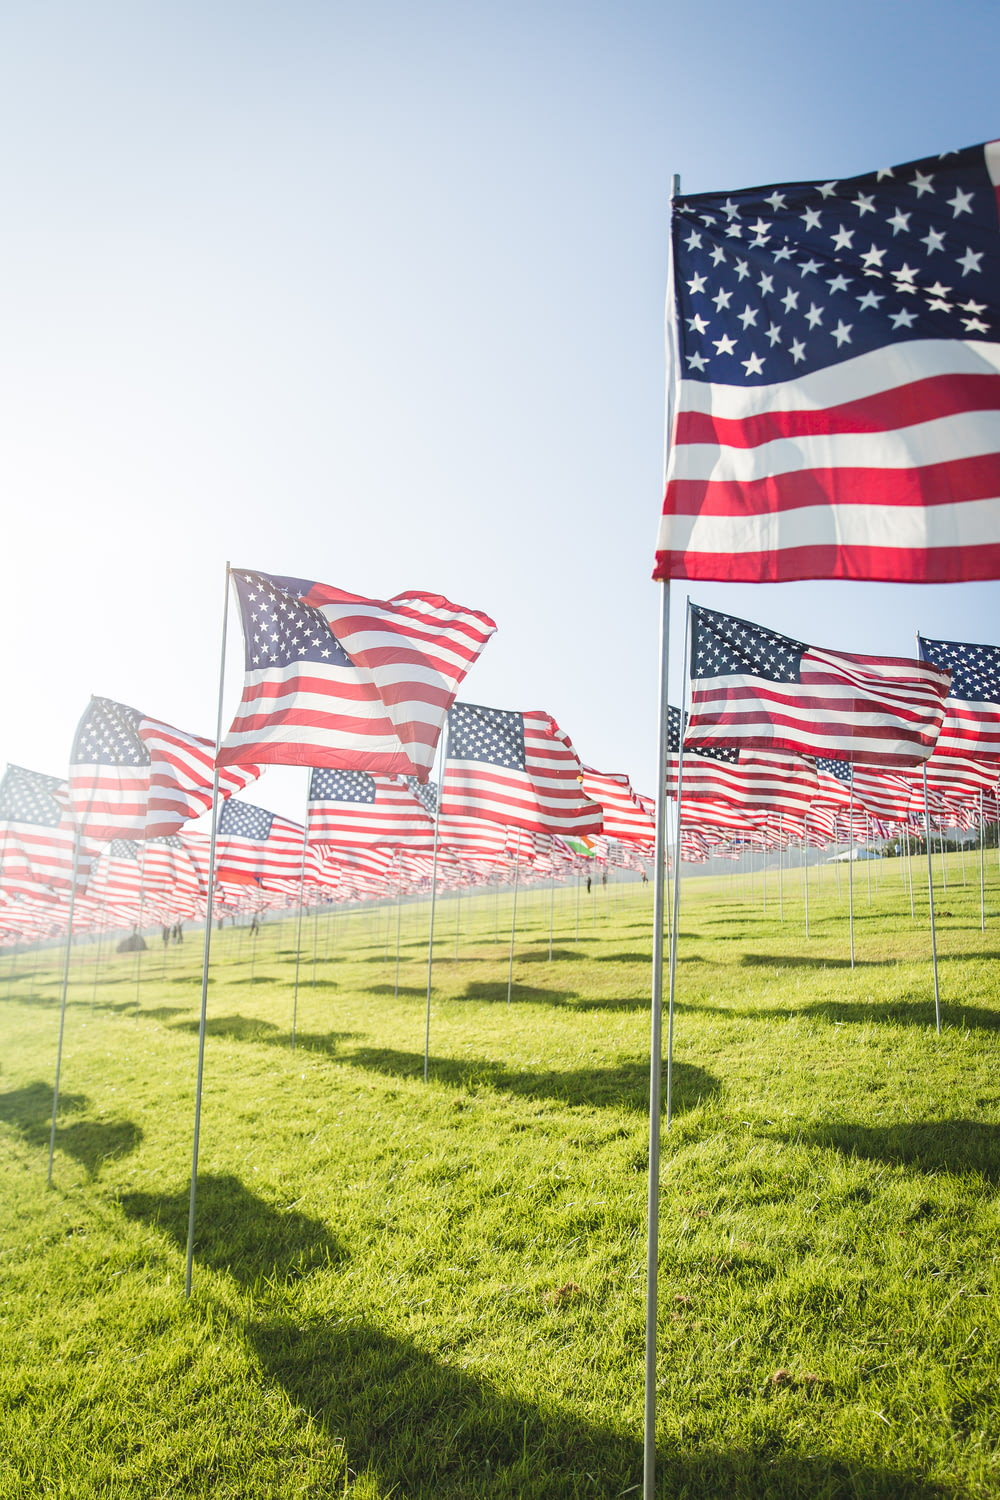 flag of America lot on grass field